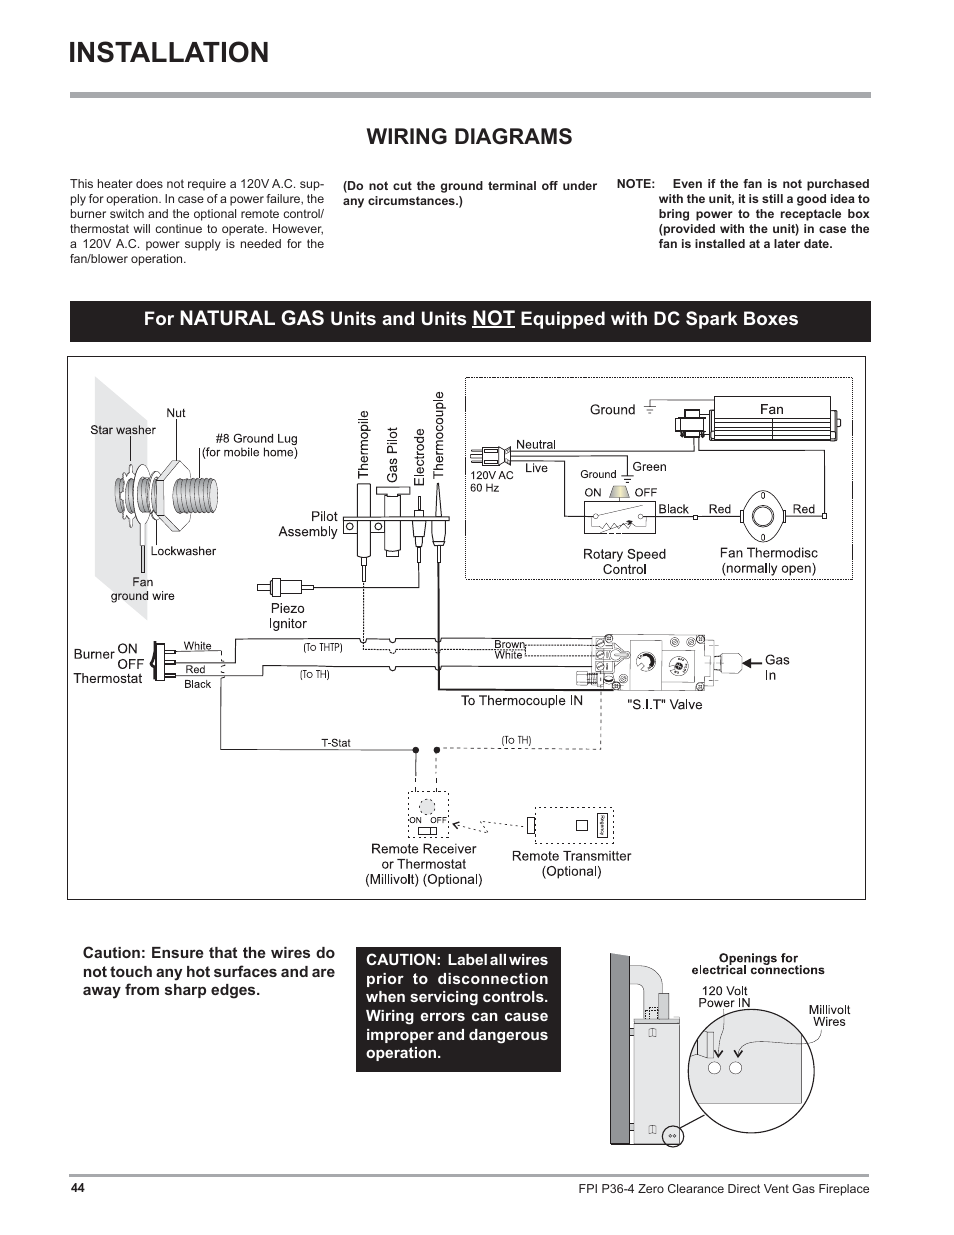 Installation Wiring Diagrams Natural Gas Regency Zero Clearance Fan Wire Diagram Direct Vent Fireplace P36 Lp4 User Manual Page 44 68